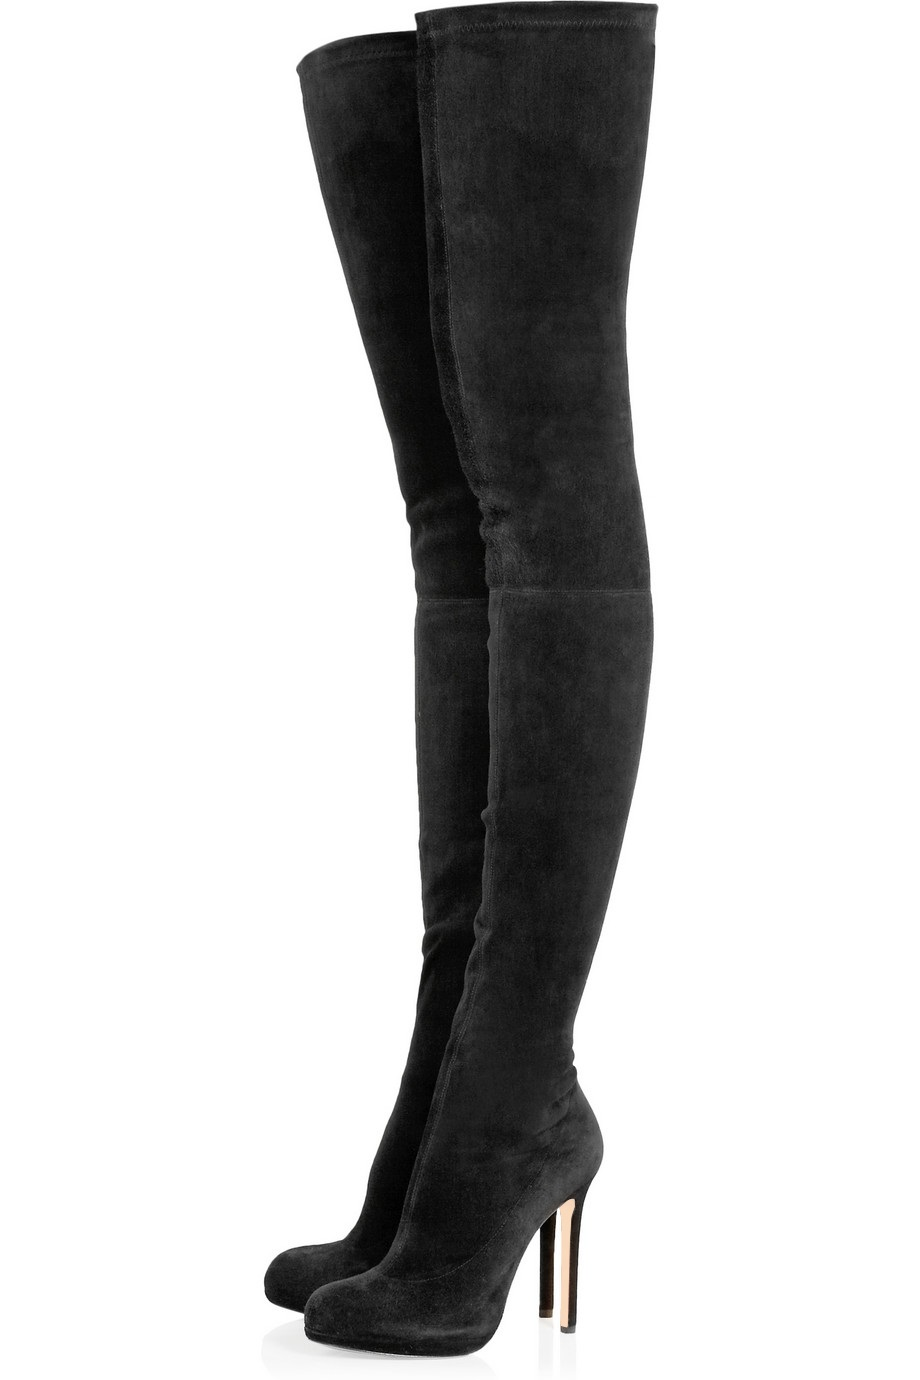 Boldees Fancy Women Black Stretch Suede Over the Knee Thigh High Boots Ladies Round Toe Platform High Heel Boots Sexy Tight Shoe